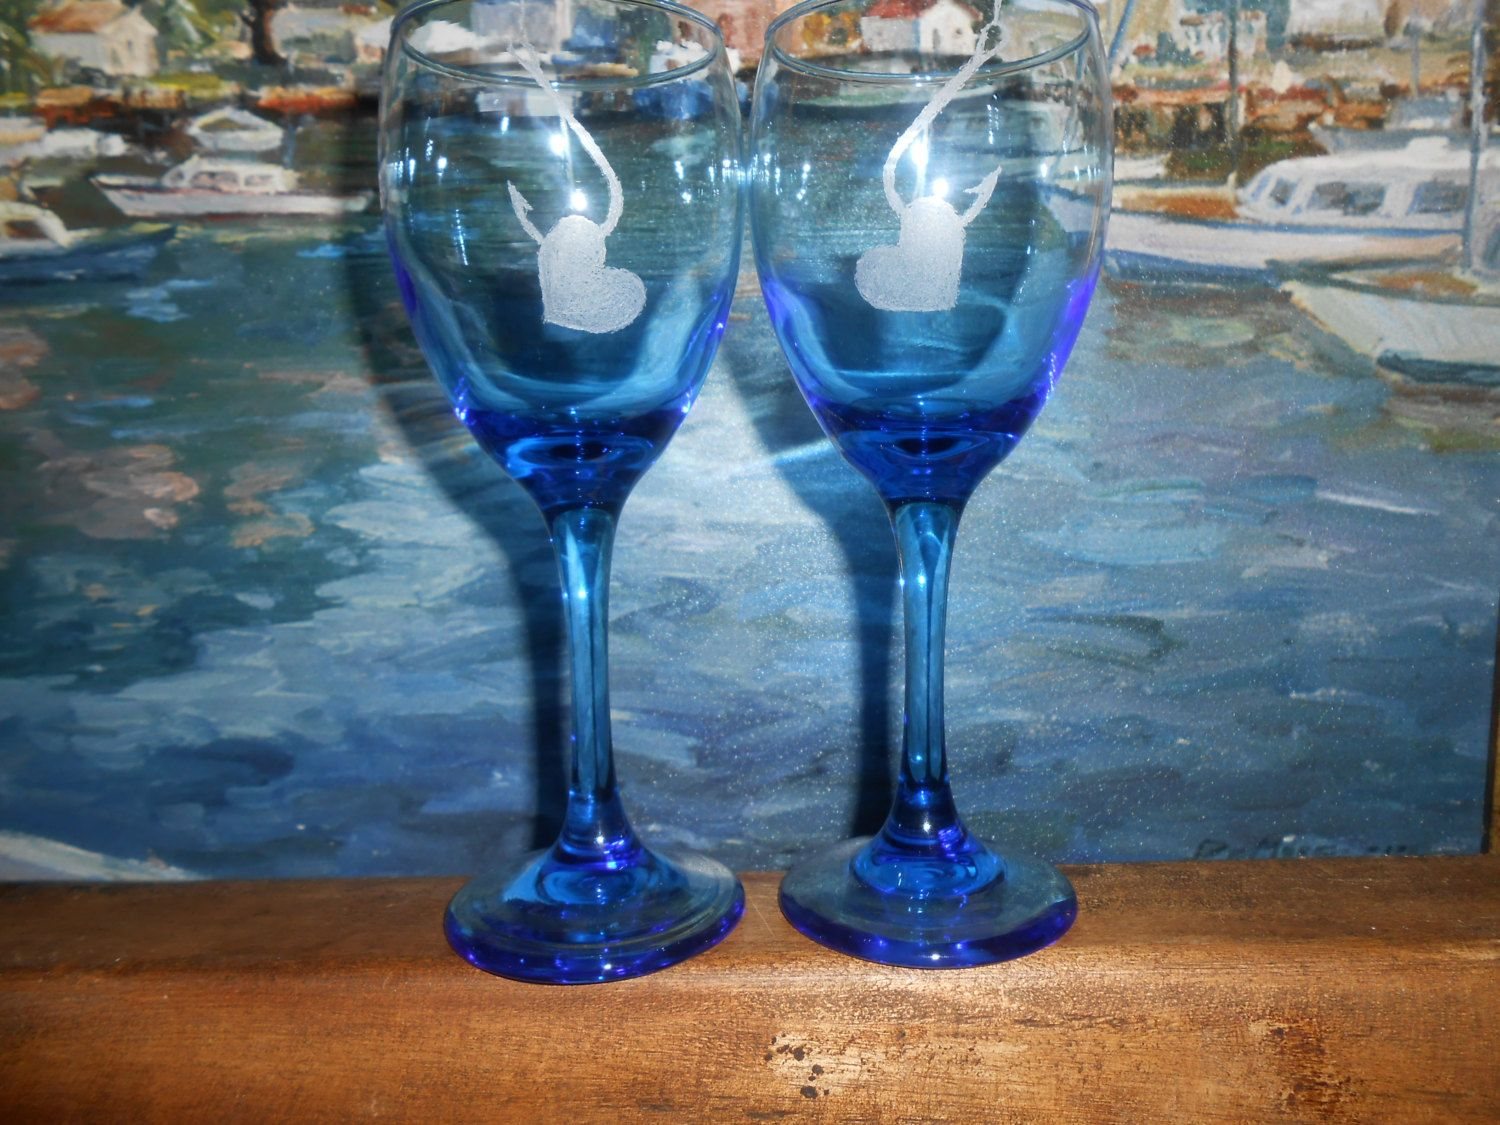 NEW ITEM! - Hooked Hearts - Valentine's Gift Idea - Etched Wine Goblets by TreasuresShop on Etsy